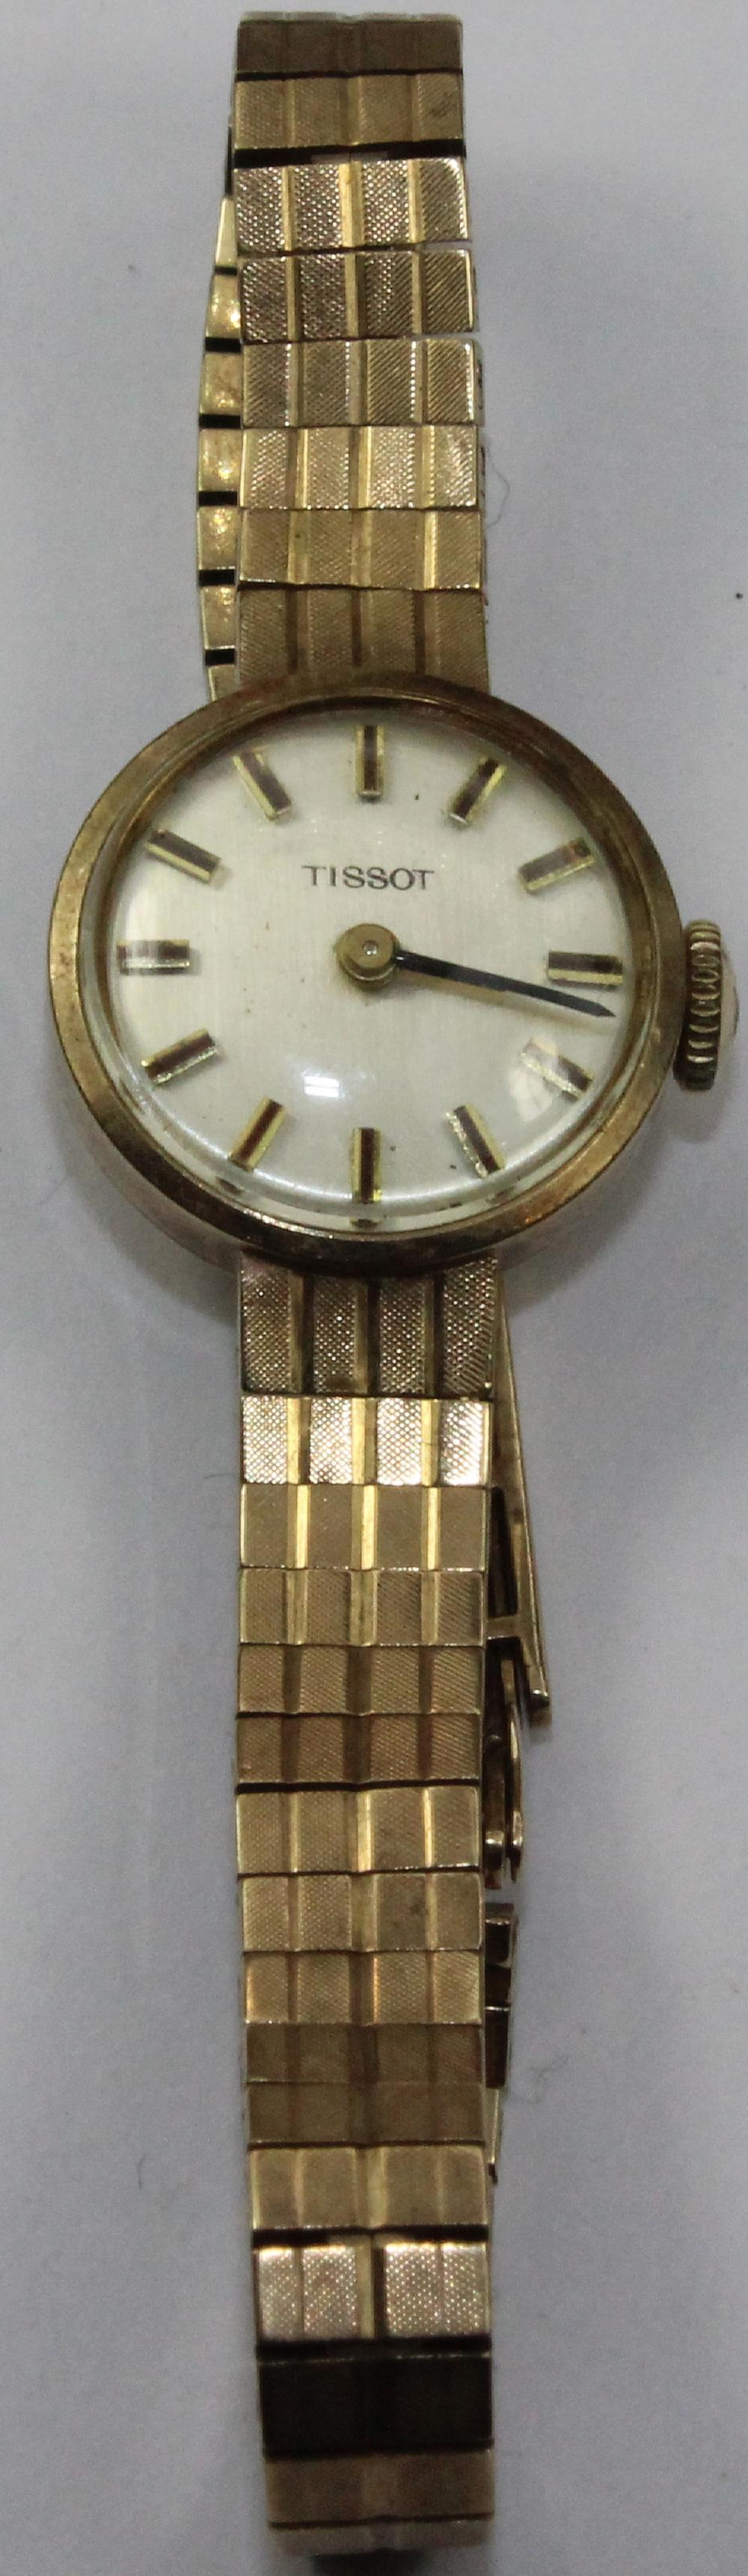 Vintage Woman's 'Tissot' Watch in 9ct Gold with attached custom Band